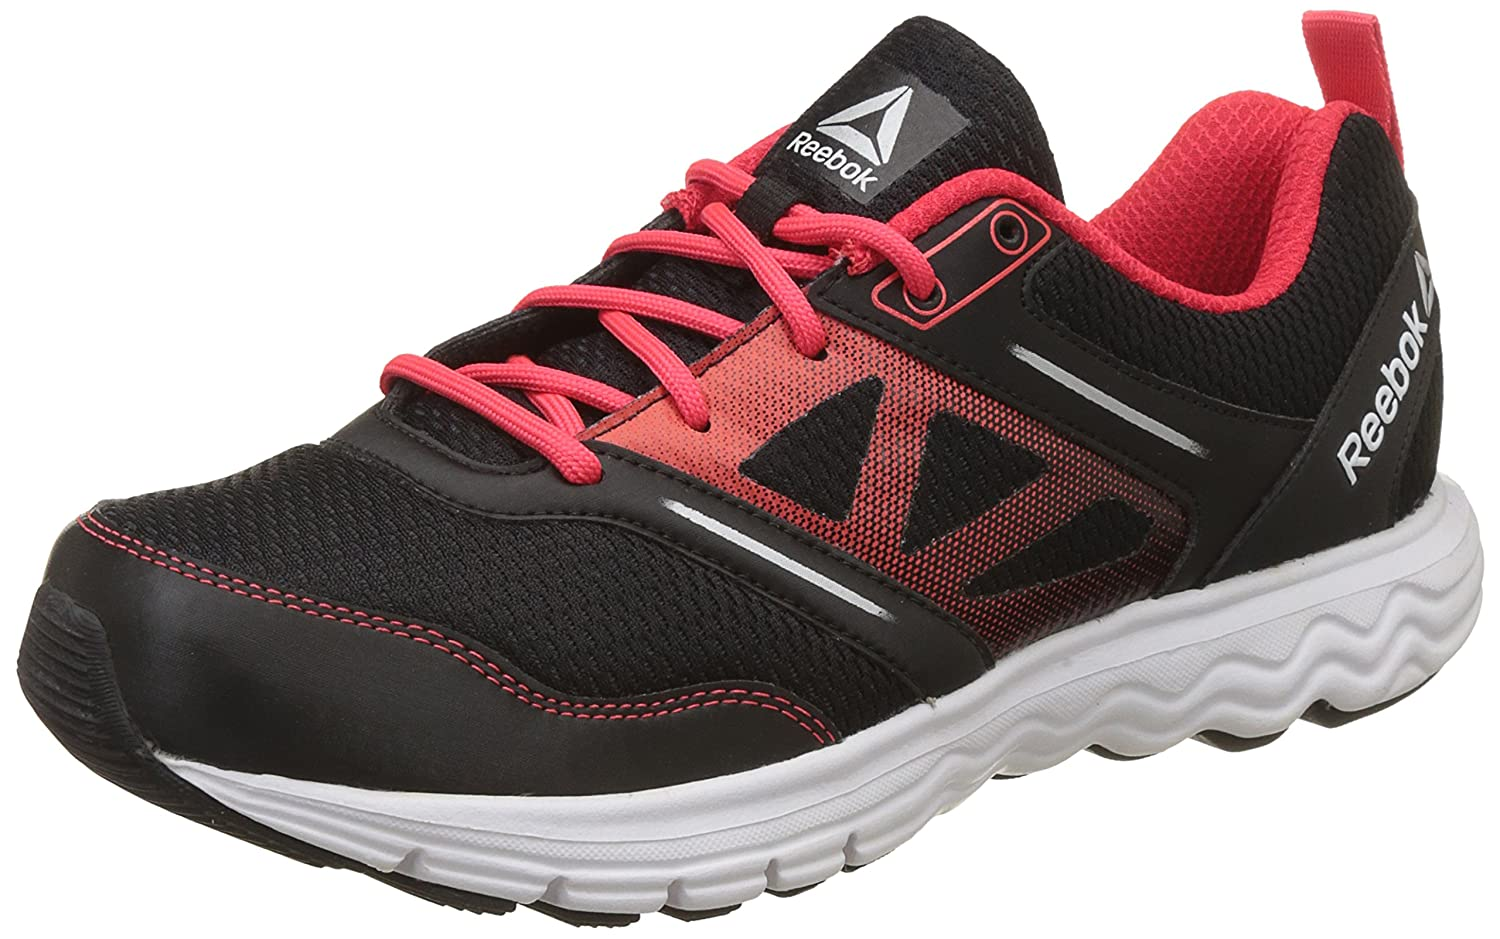 8fb5a163b95 Reebok Men s Fuel Race Blk Glow Red Silver Running Shoes - 10 UK India  (44.5 EU)(11 US) (BS9205)  Buy Online at Low Prices in India - Amazon.in